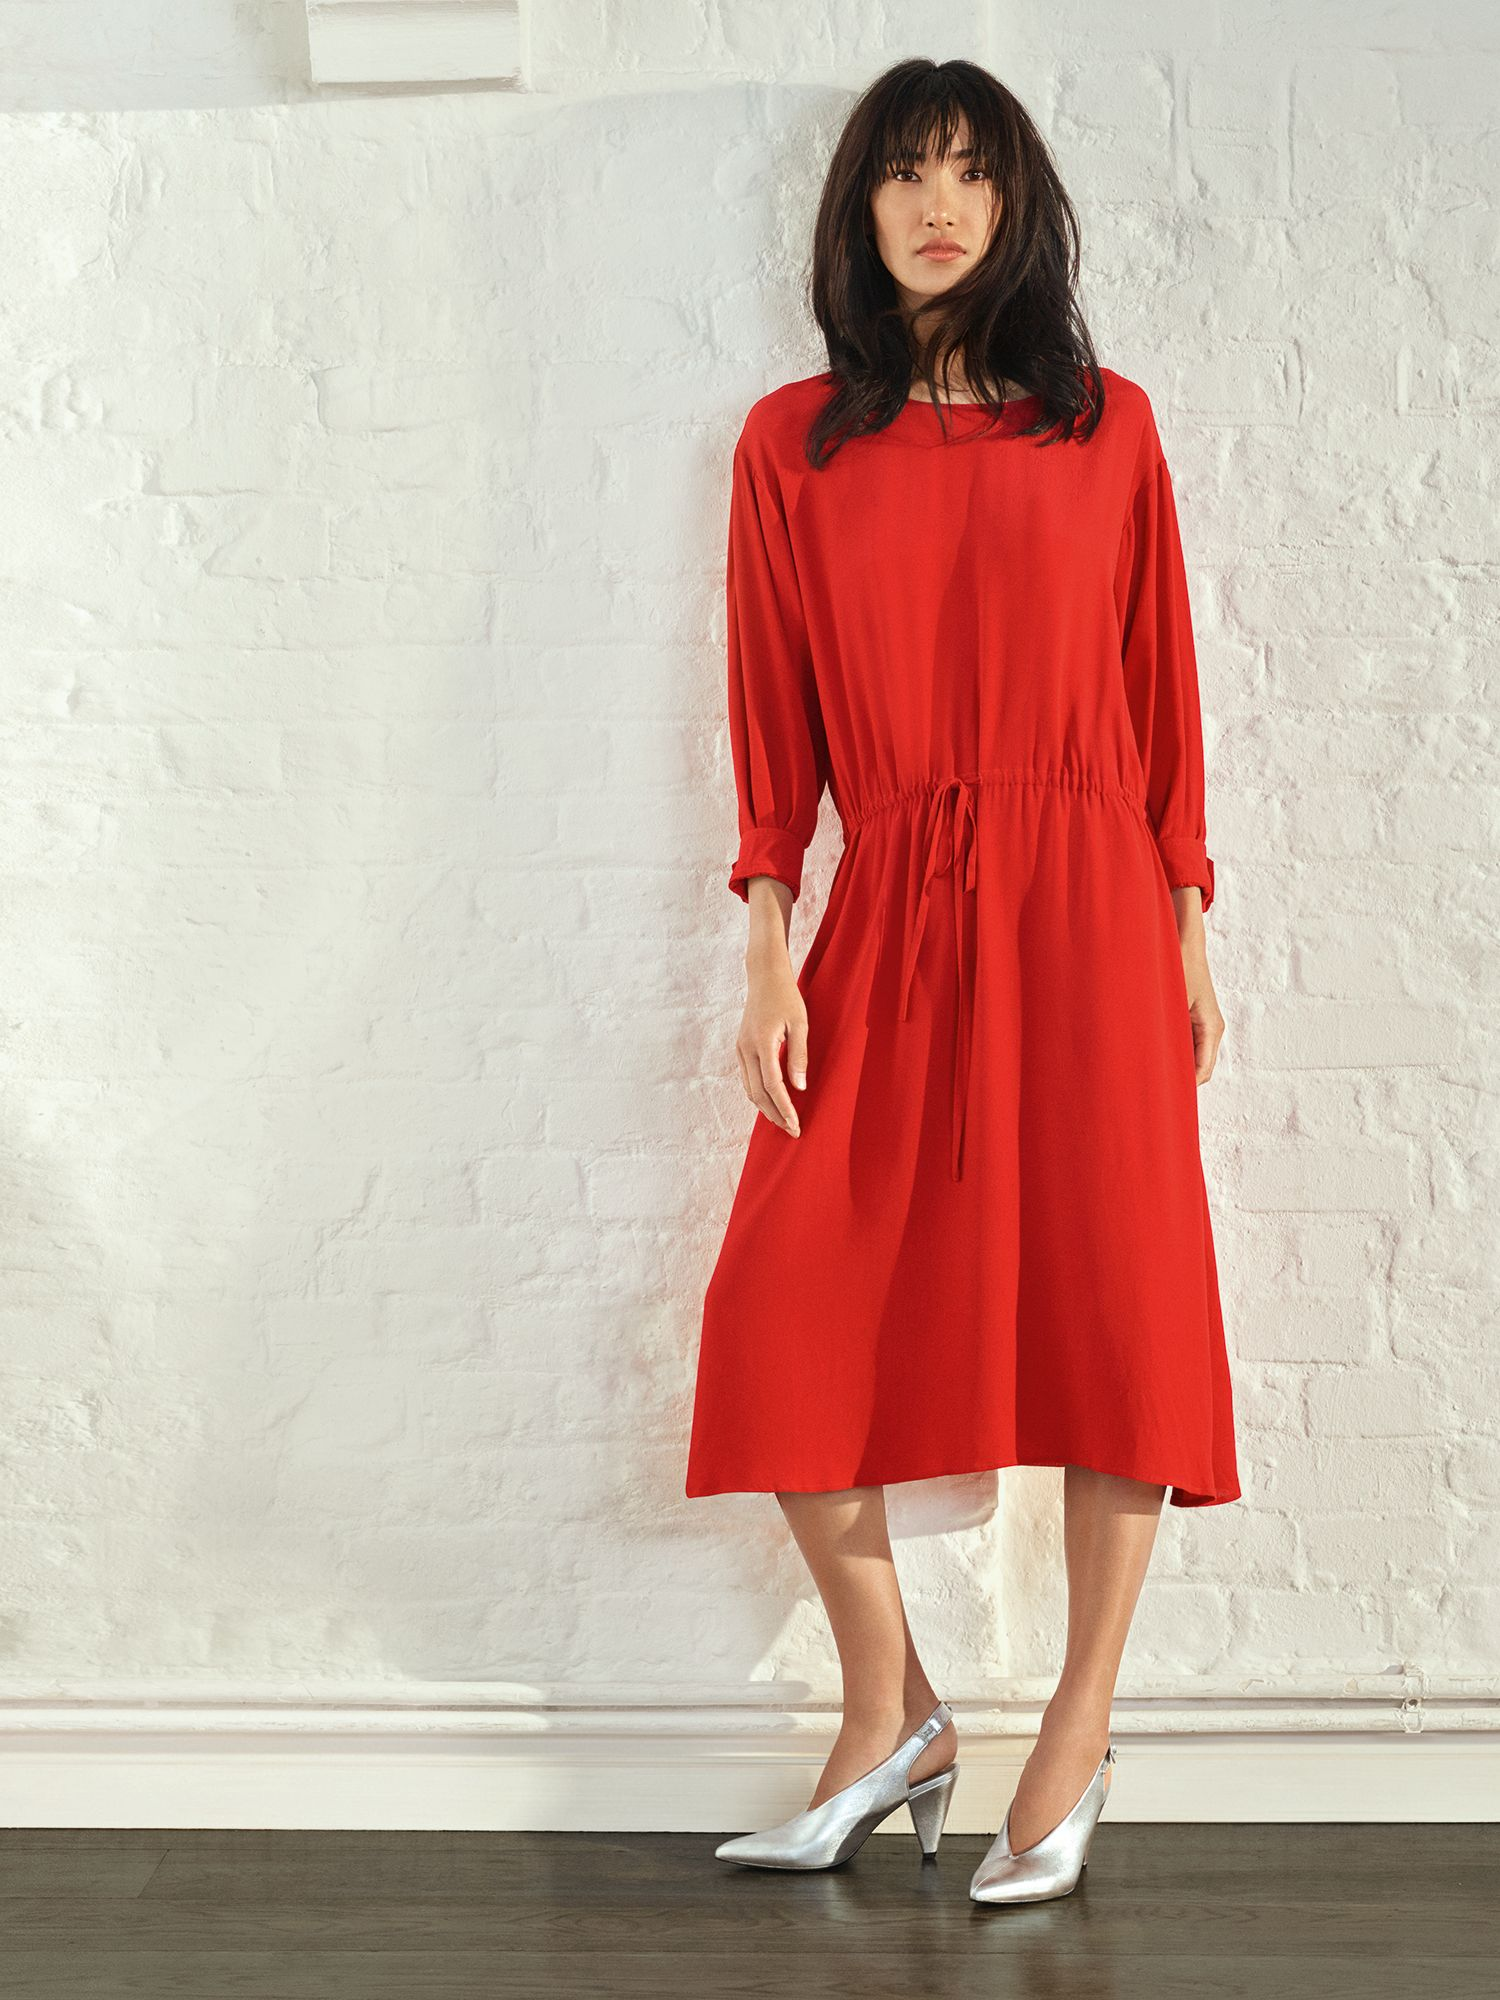 A model wearing a red dress and silver cone-heel shoes from fashion retailer John Lewis